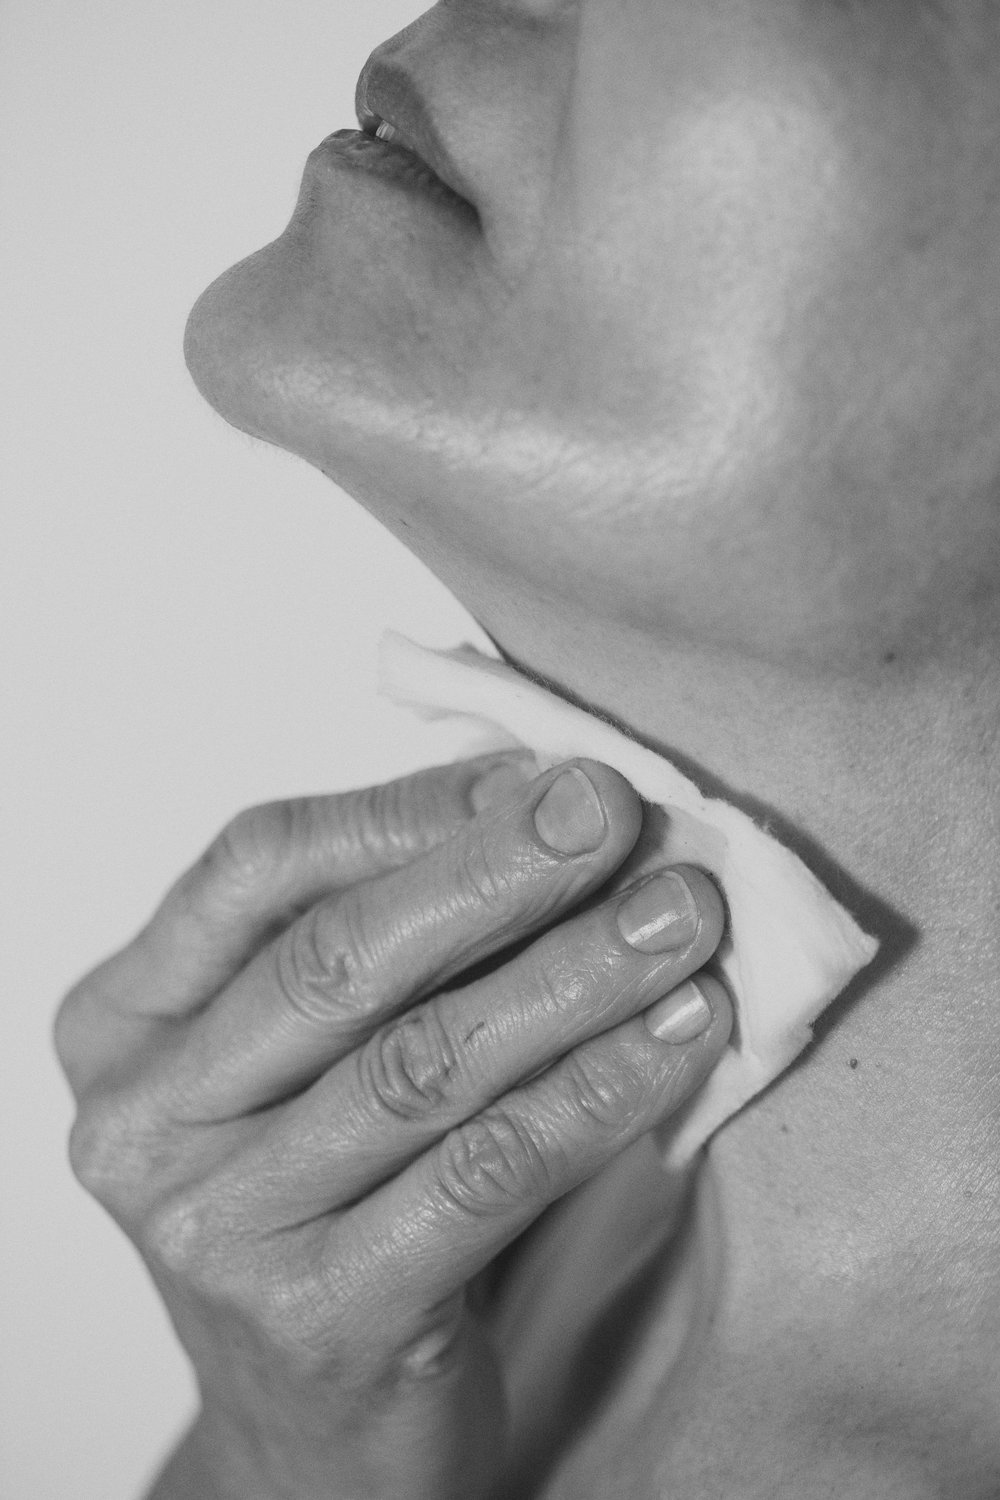 - Often we forget to give the skin of our neck and neckline the attention they need, these areas have a much thinner skin than the rest of our body. It dries out really easily, and the appearance of wrinkles is more frequent. To make your skin look good, at the time of applying the toner, the serum and cream we recommend doing it with an upward massage; from the lower area of your neckline to your chin using your fingertips. You can also massage from the center of our neck towards the nape. You can make these movements by adding them to your nocturnal rituals. The area of the neck is full of nerve endings and tends to load and block, this is a habit that helps the relaxation of the area while providing wellness. The application of the toner is very simple. It is important to have a clean face . To apply it, we recommend moistening a disc and gently rubbing it across the face with gentle touches. This way, you prepare the skin to be able to hydrate it. You can also use it to refresh the skin during the day.